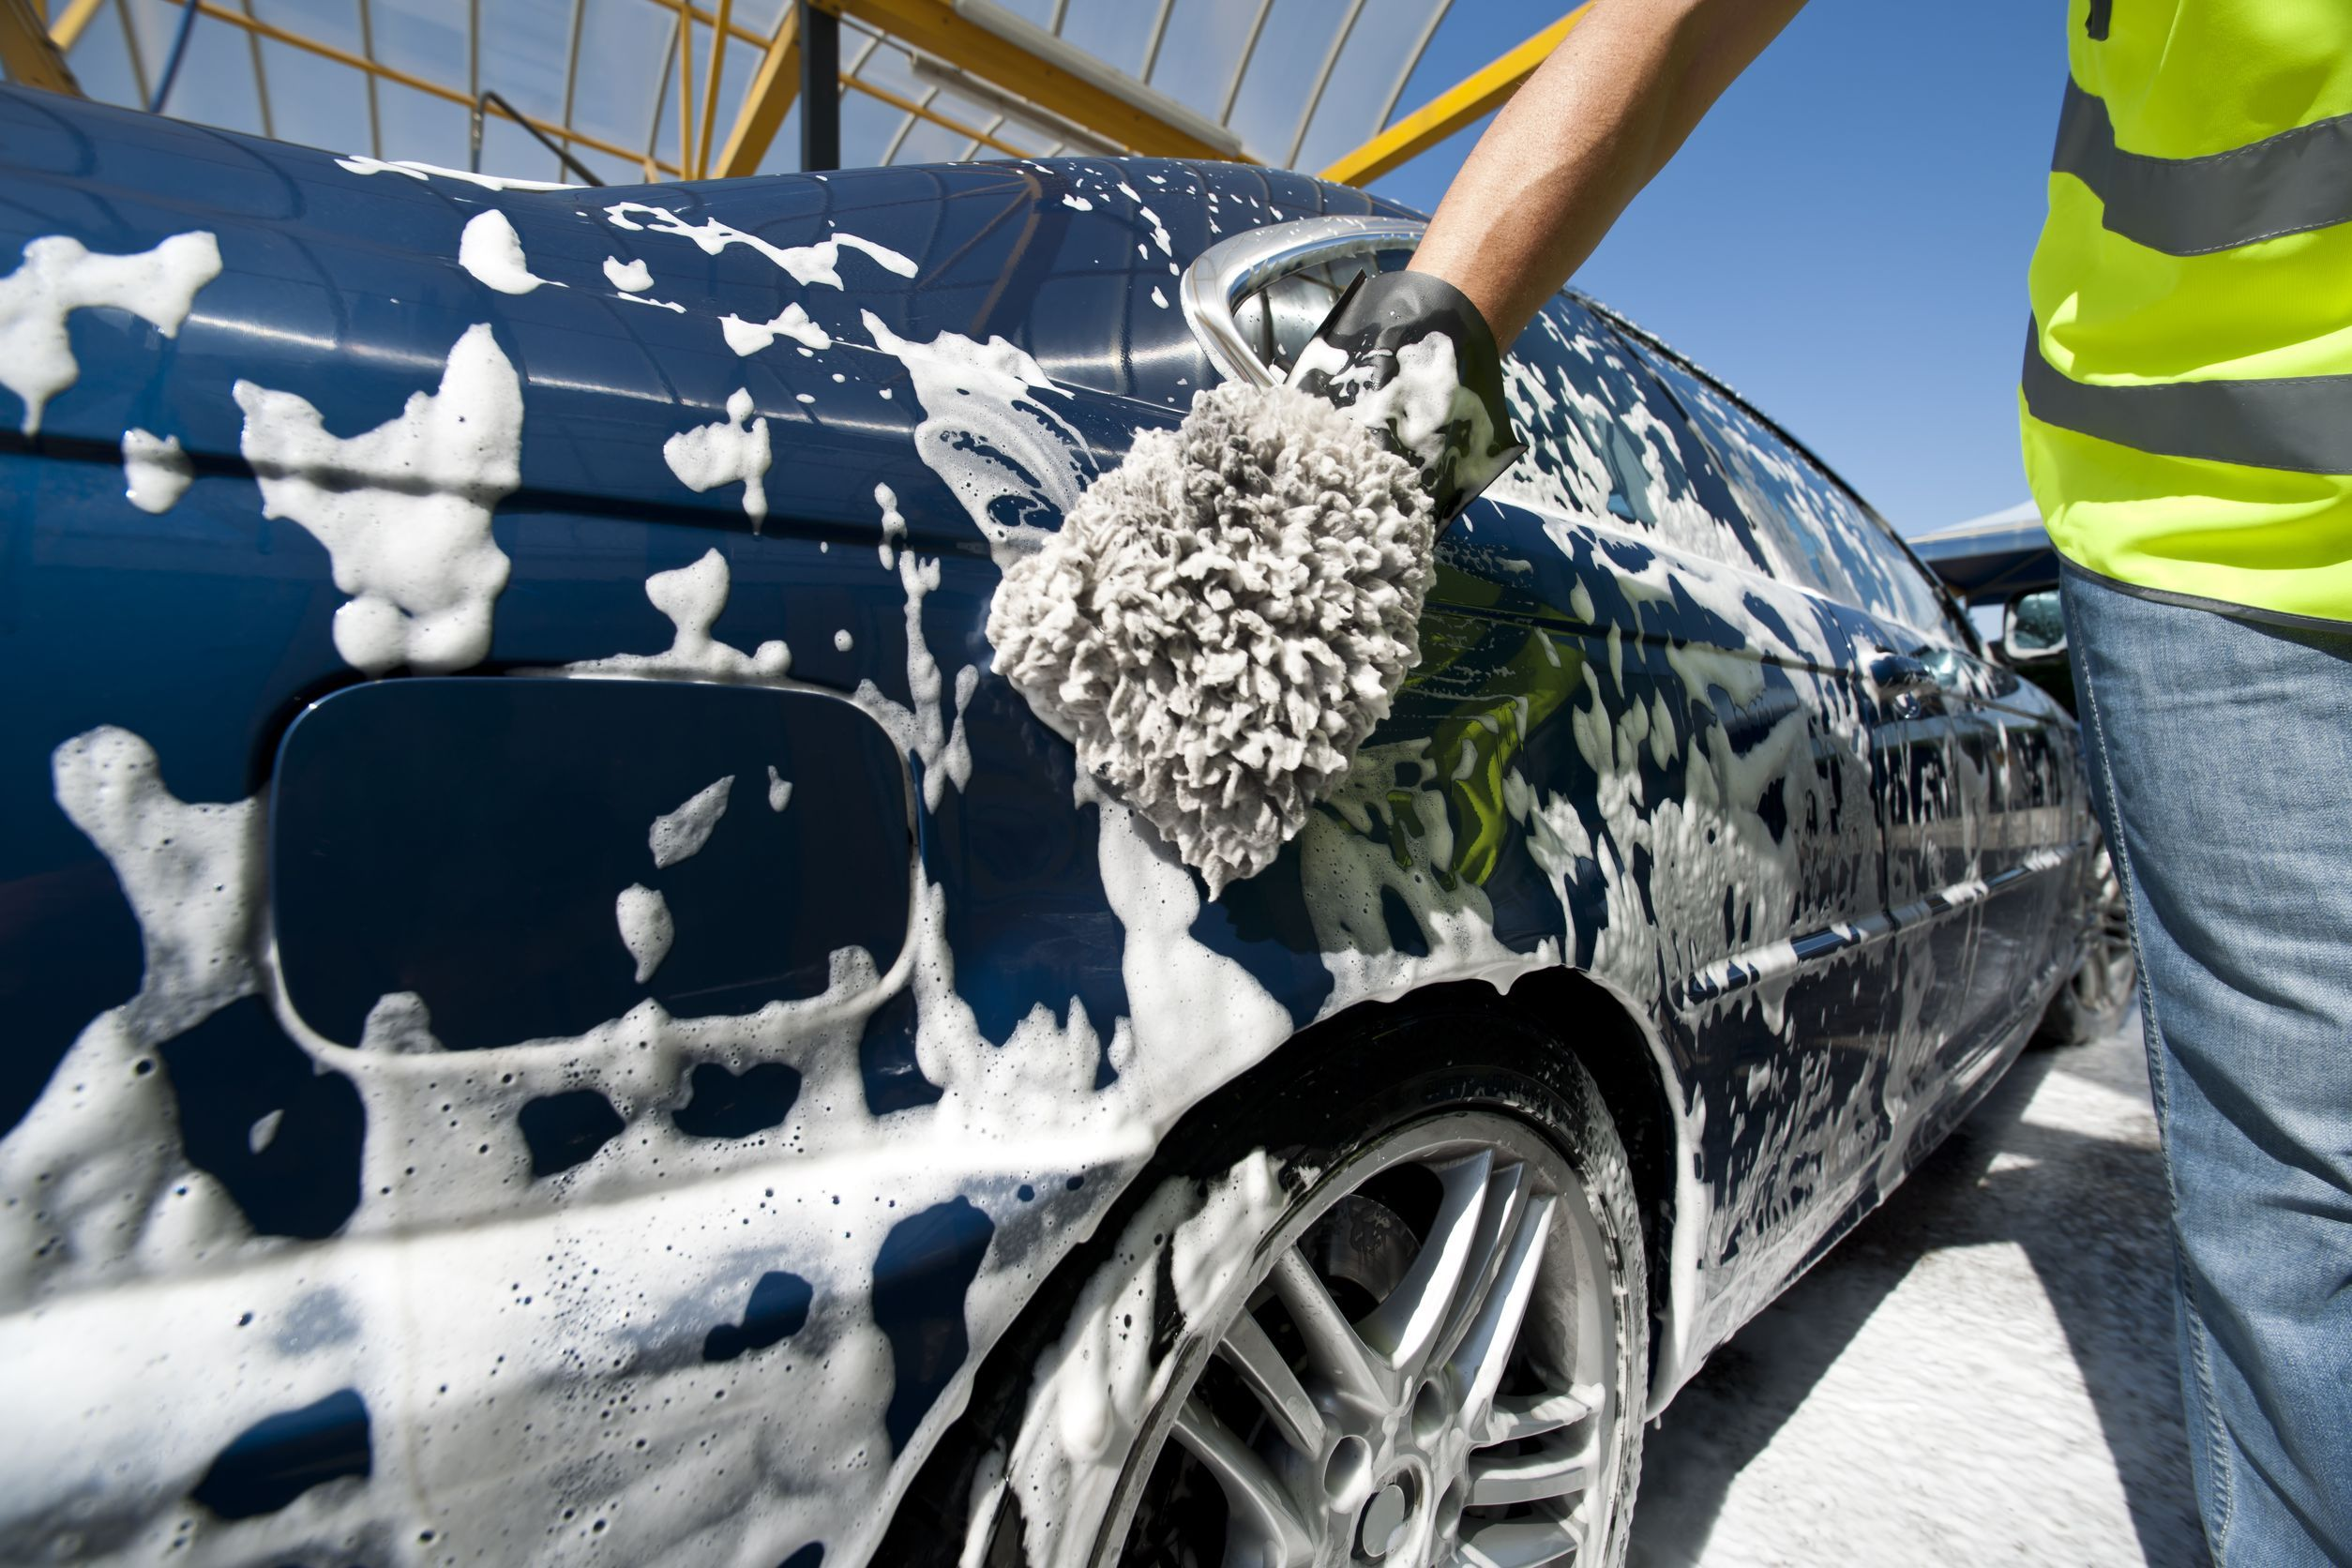 Take care of your car and get all the information about the best get your complete car wash car cleaning and detailing services in bangalore for your car right at your doorstep through our network of branded car service solutioingenieria Image collections